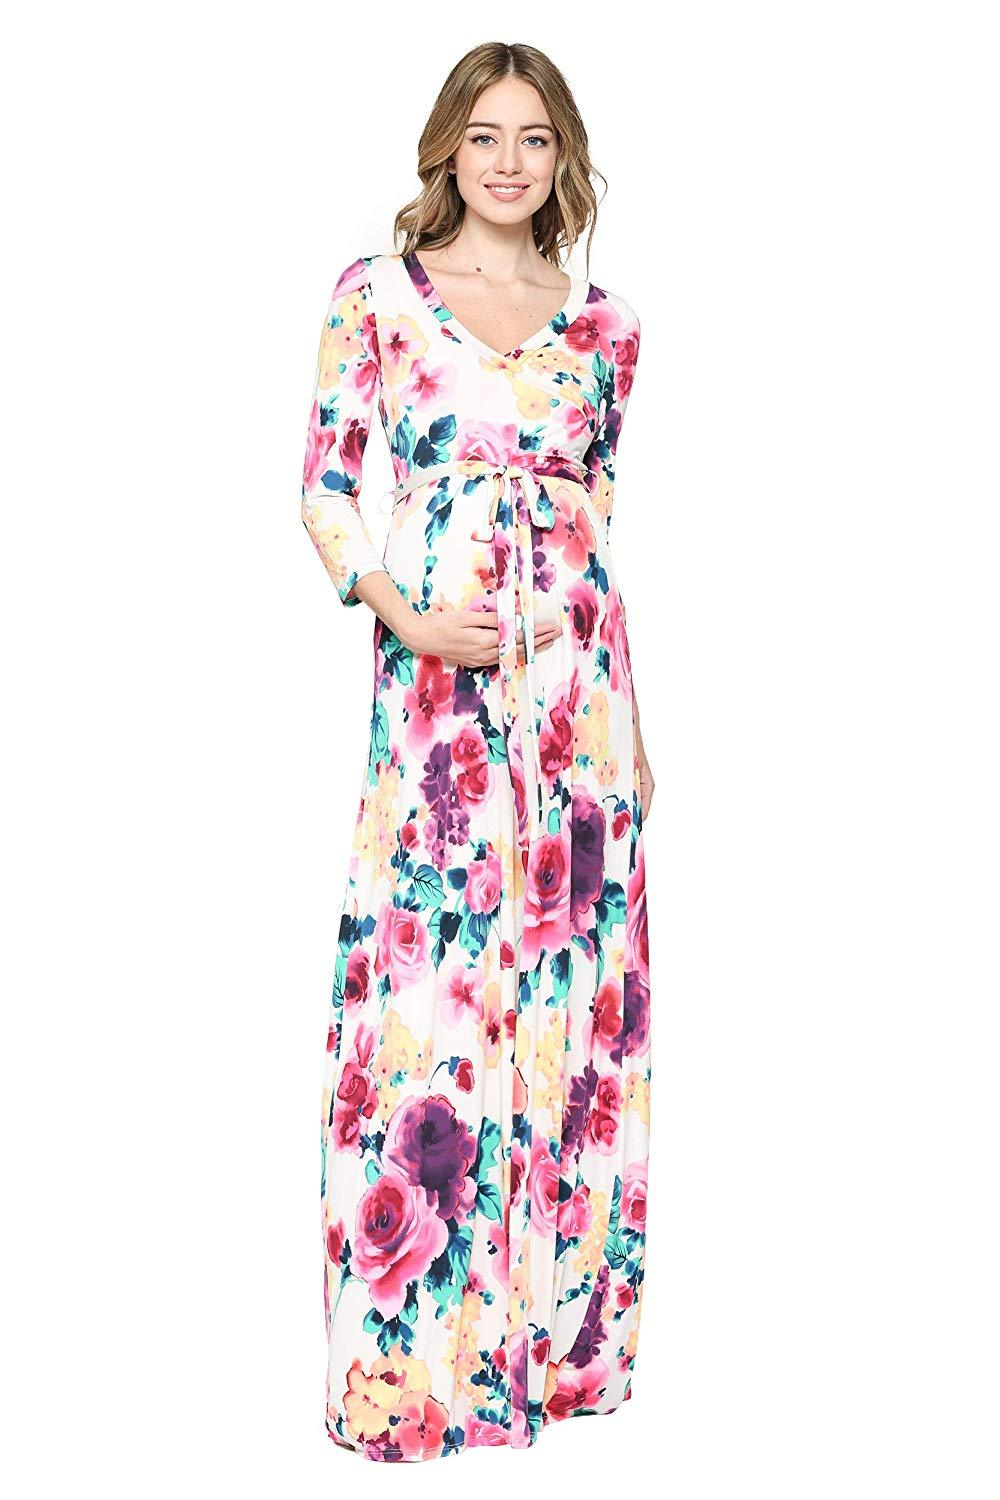 Floral Maternity Maxi Dress - Mommylicious